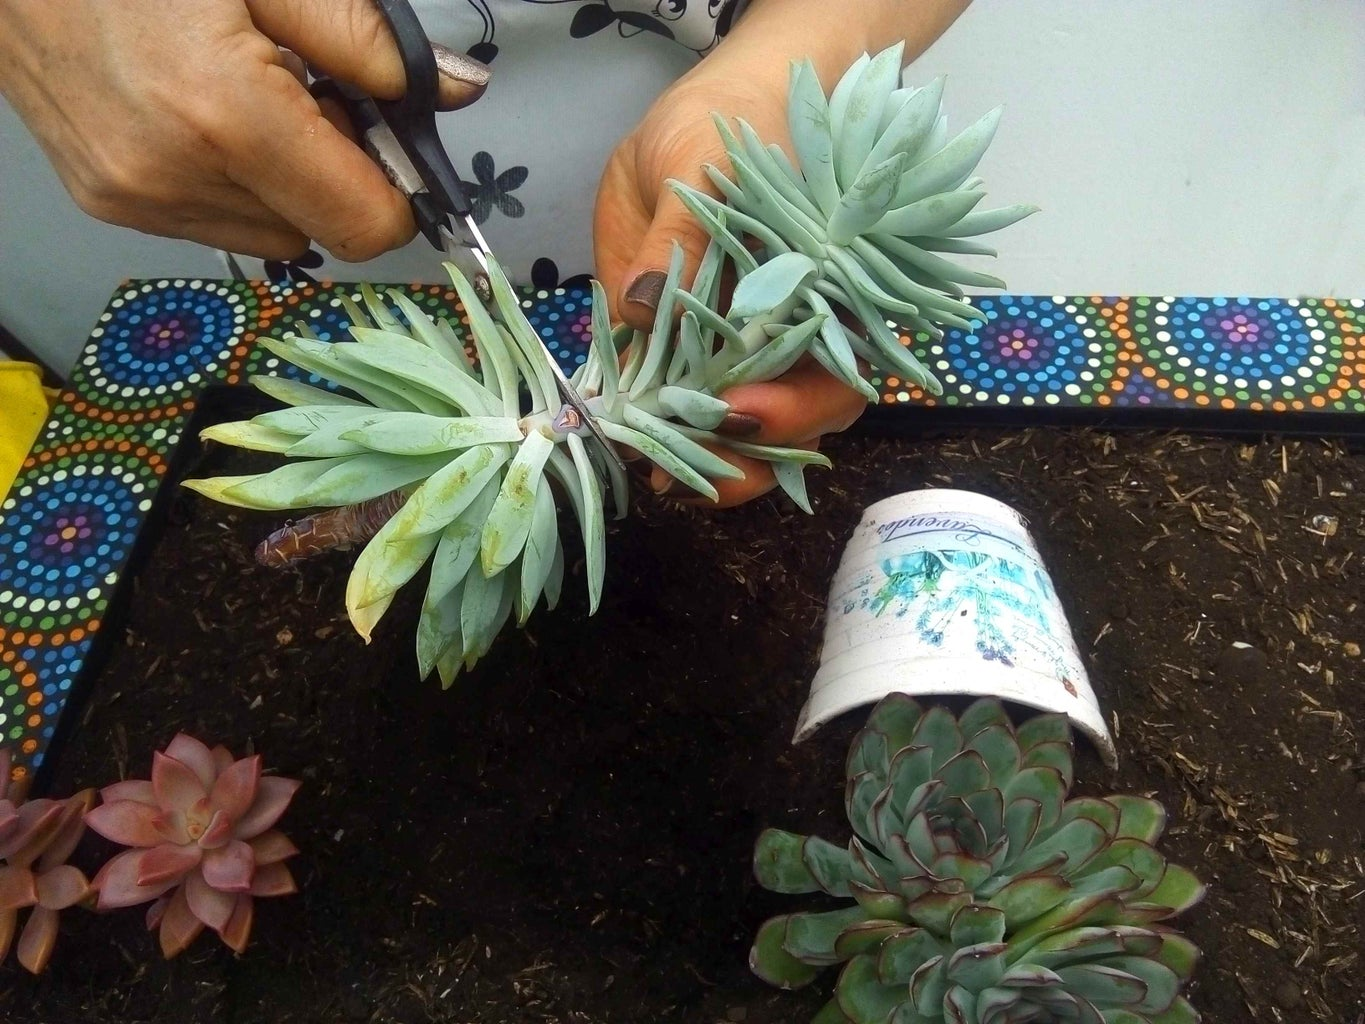 Preparation of the Succulents to Plant